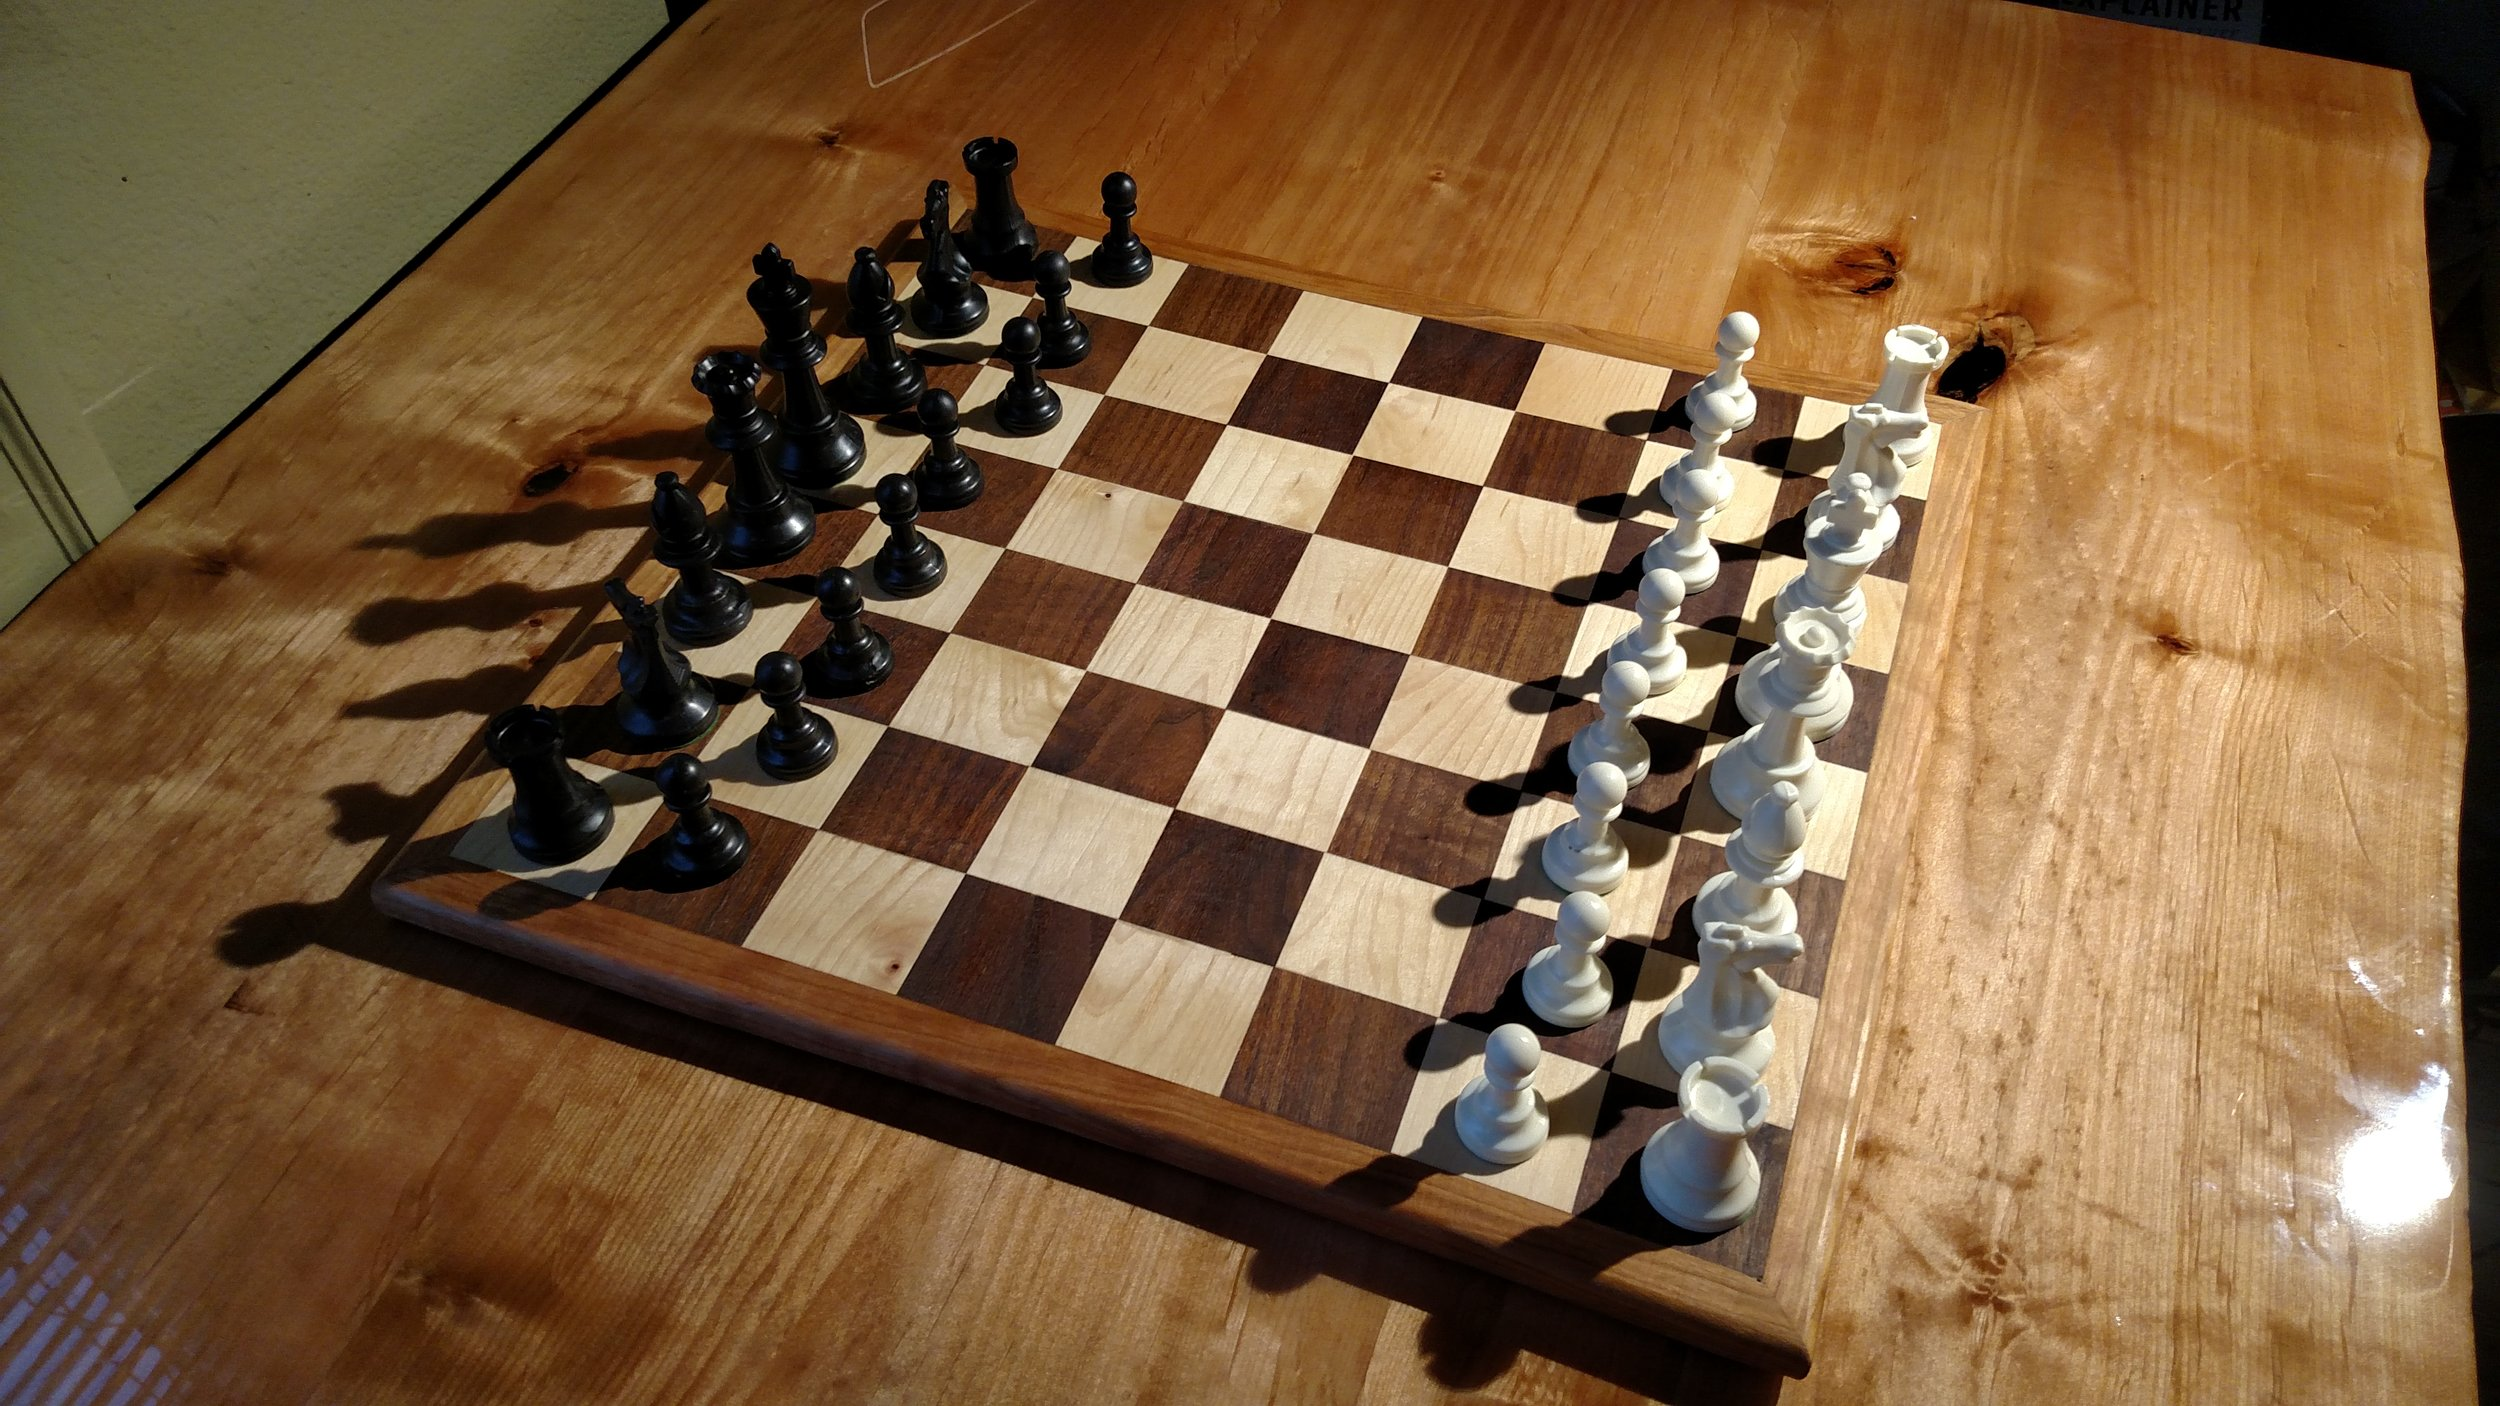 I made this chess board as a Christmas present for my sister Carla.